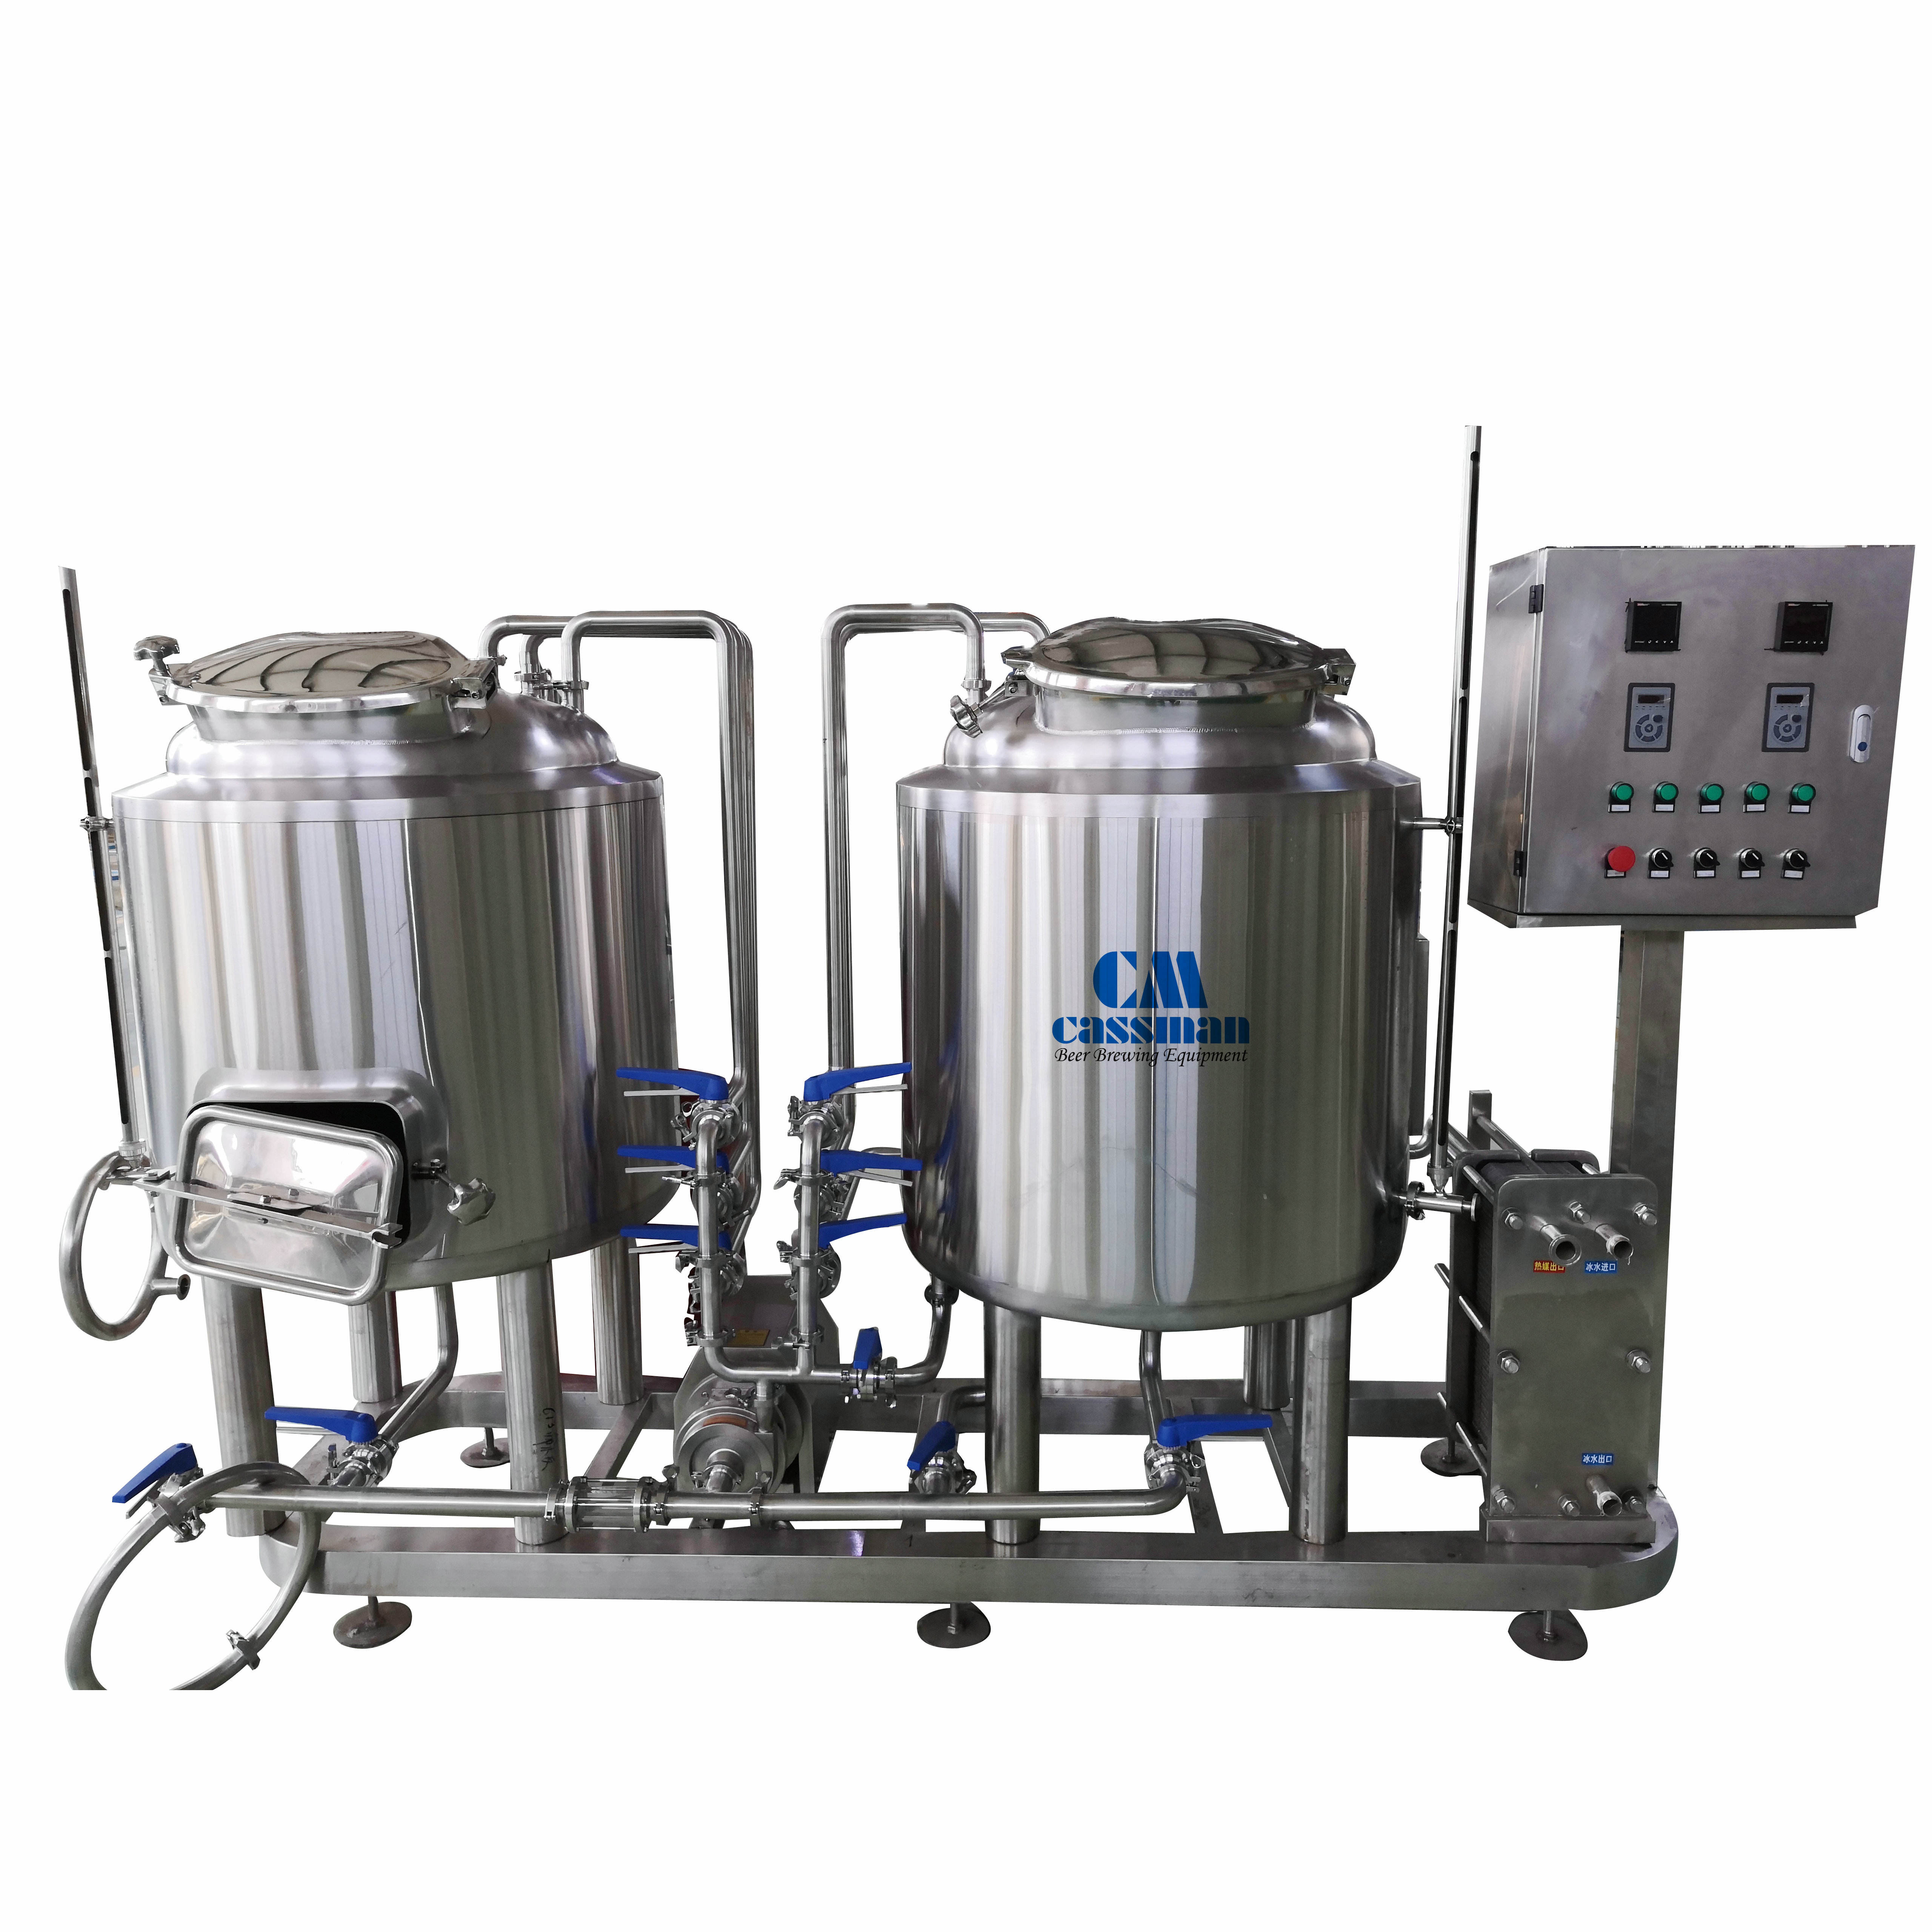 100 Litre Brewing System With Fermentation Vessels and Serving Tanks